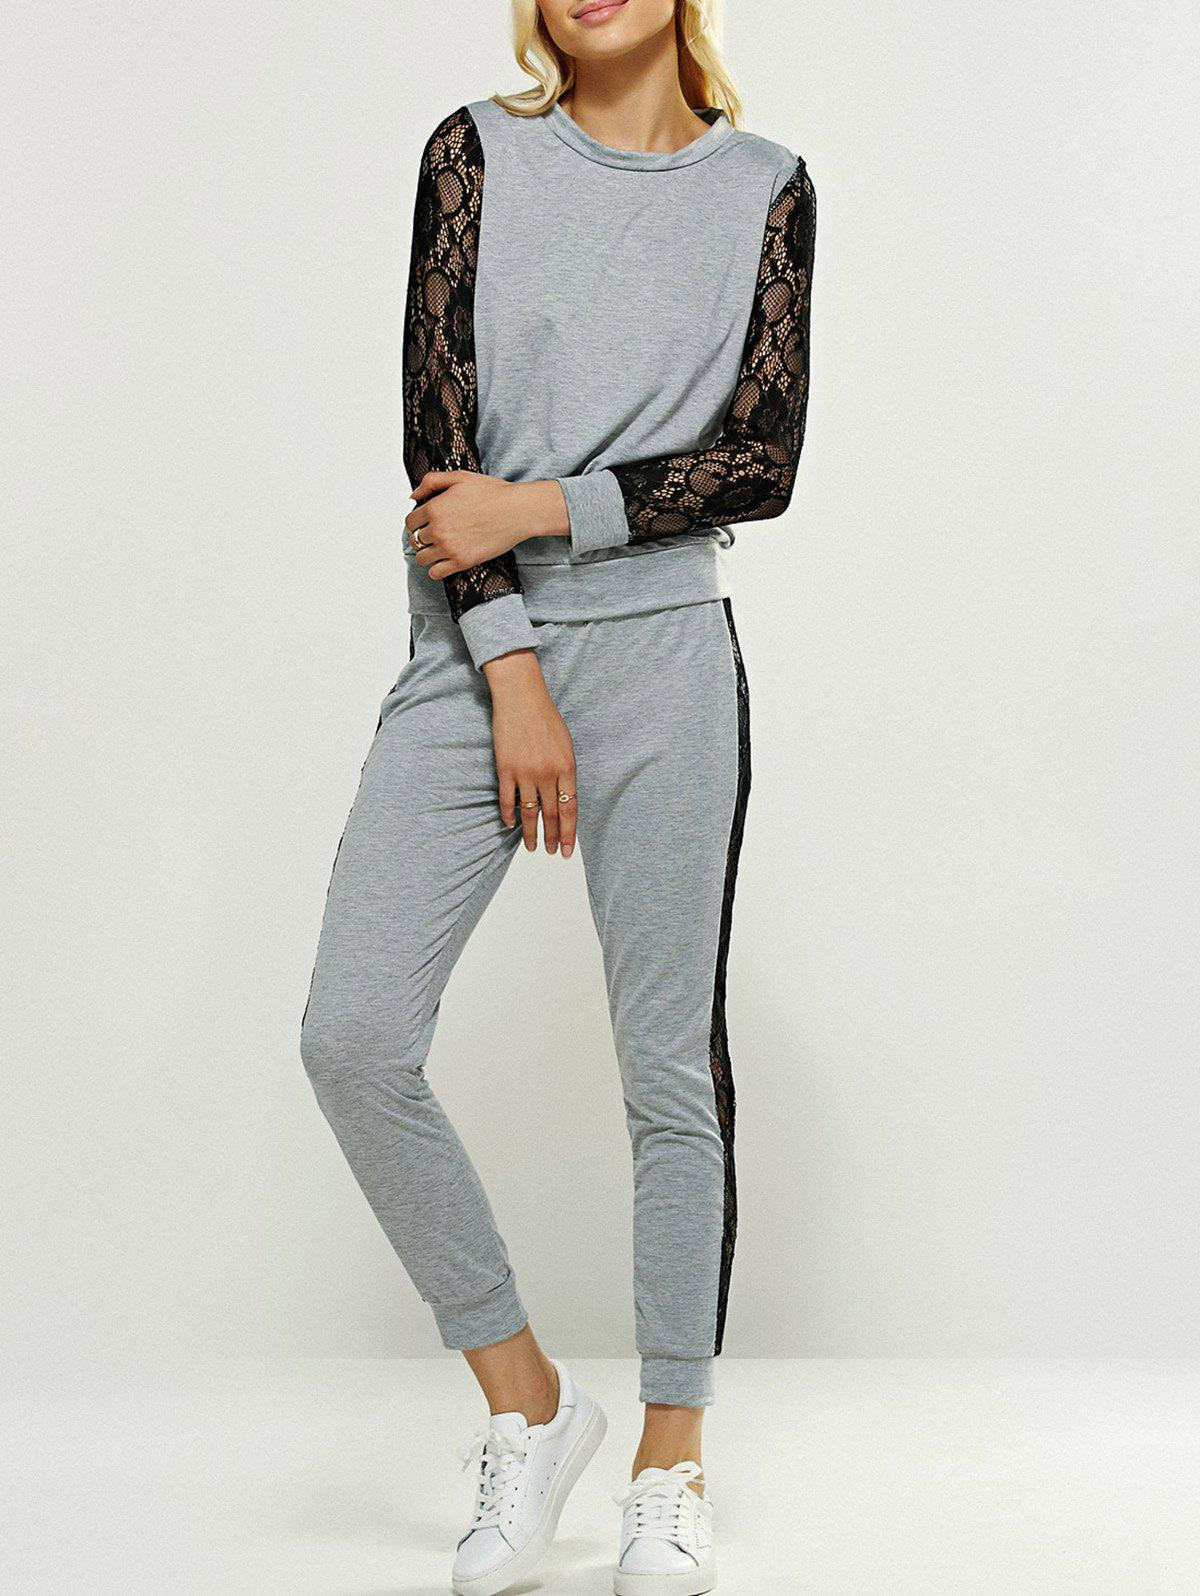 Lace Patched Tee and Pants